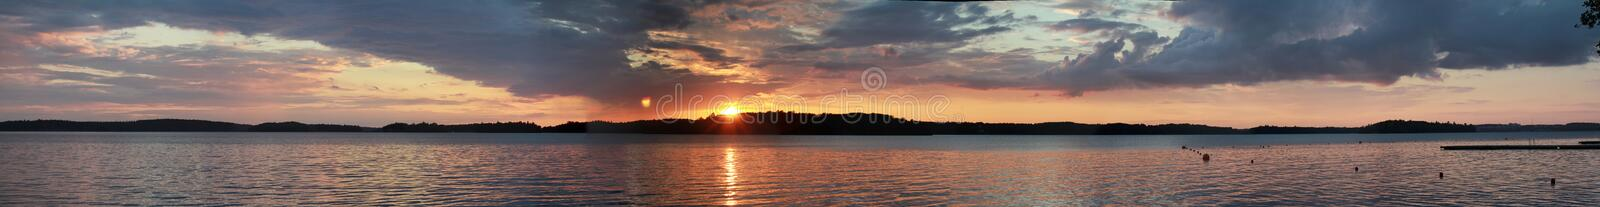 Sunset on the lake horizon landscape. Dark sunset over river water view panoramic royalty free stock photo